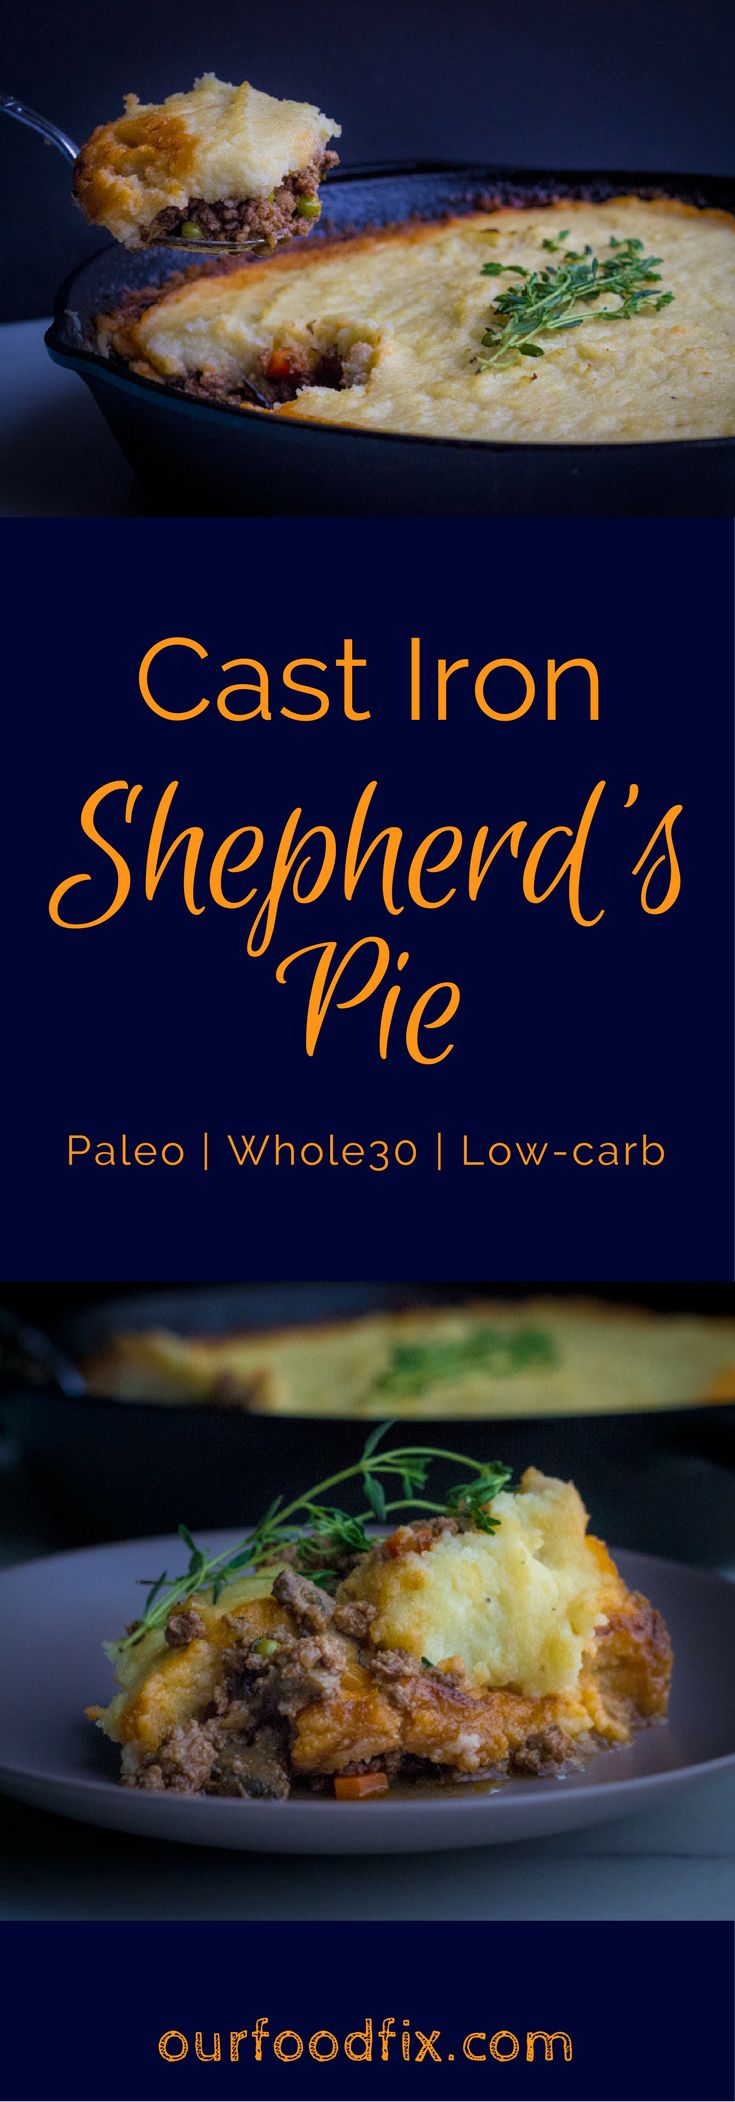 A Paleofied version of Shepherd's Pie, with a rich meat and vegetable mixture, and flavorful low carb veggie mash topping. All baked together in one pan, this simple dish is a healthy dinner staple. Paleo recipes | Paleo dinner | Cast iron recipes | One pan meals | Beef recipes | Whole30 recipes | Whole30 dinner | Easy recipes | Make ahead meals | Dairy free recipes | Grain free recipes | Gluten free recipes | Healthy recipes #ourfoodfix #shepherdspie